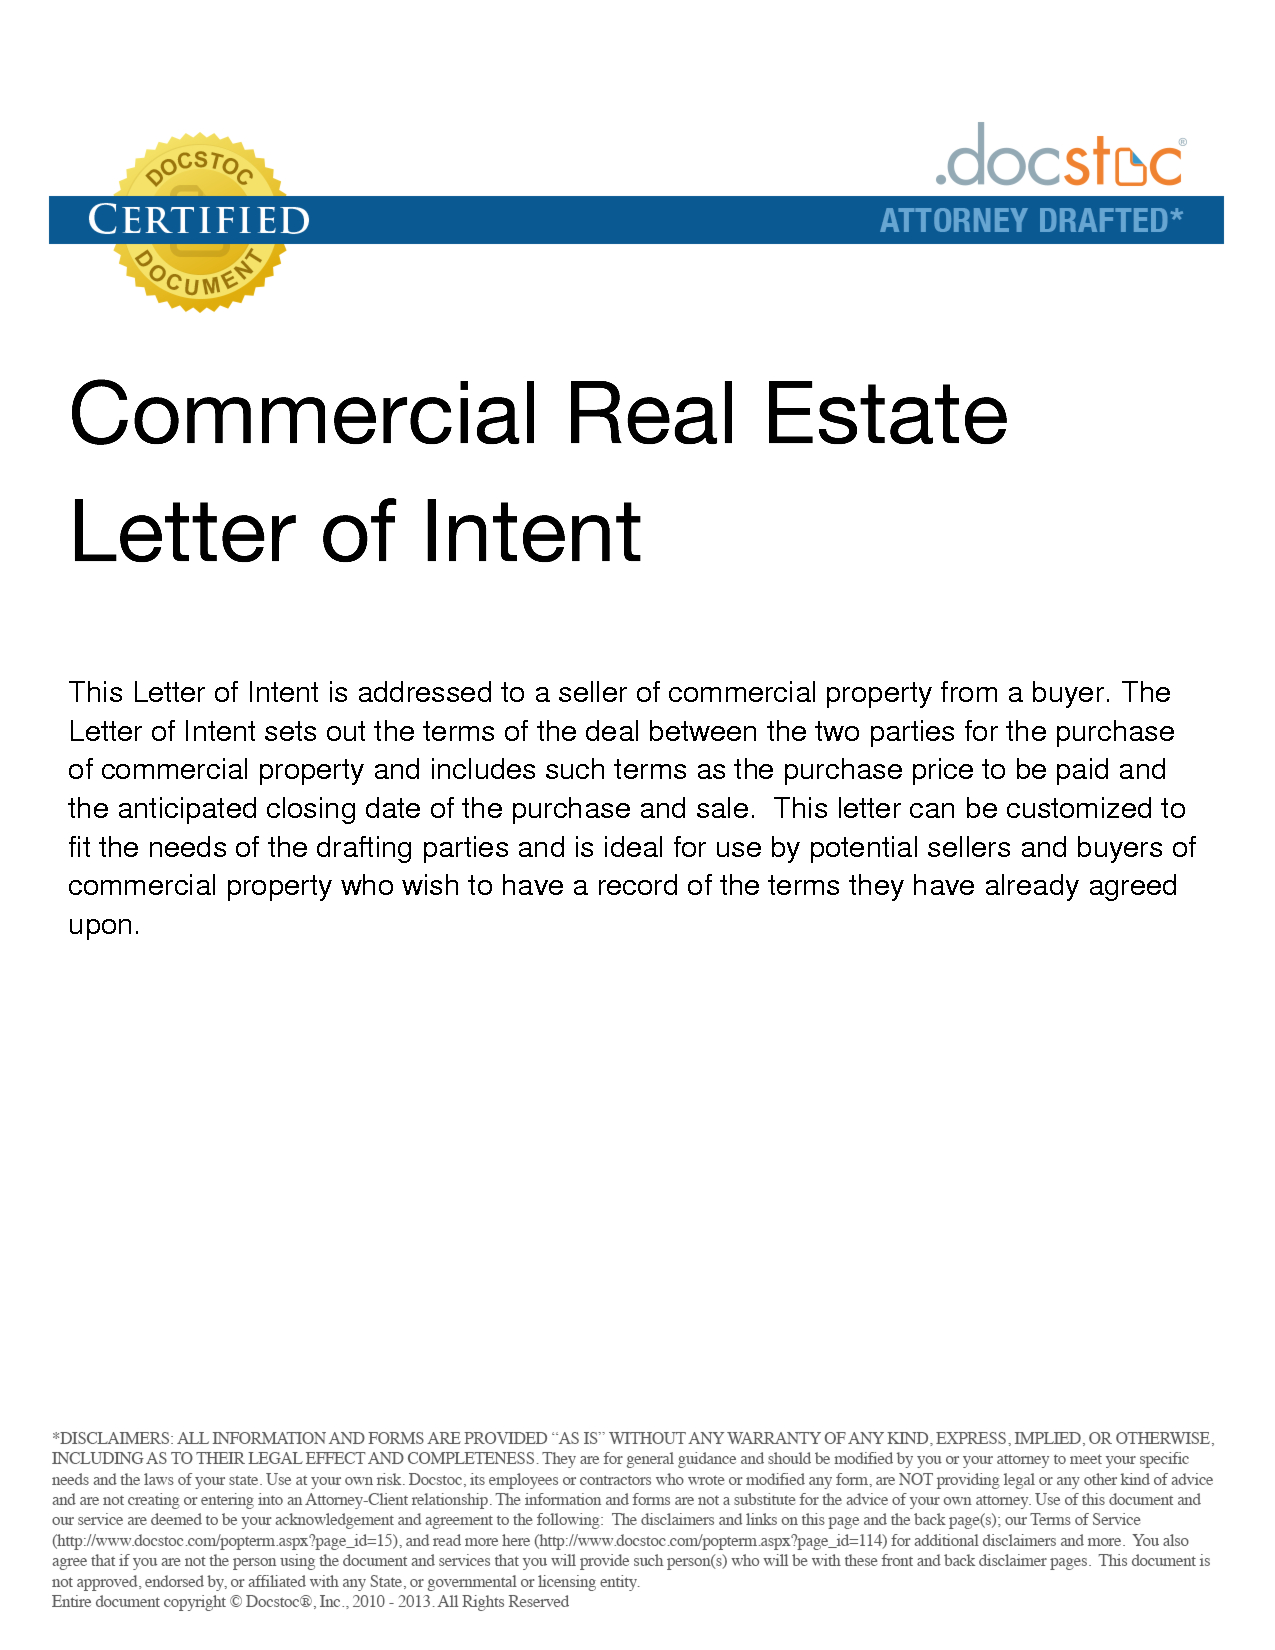 Letter Of Intent to Purchase Template - Sample Letter Intent Purchase Real Estate Best S Property